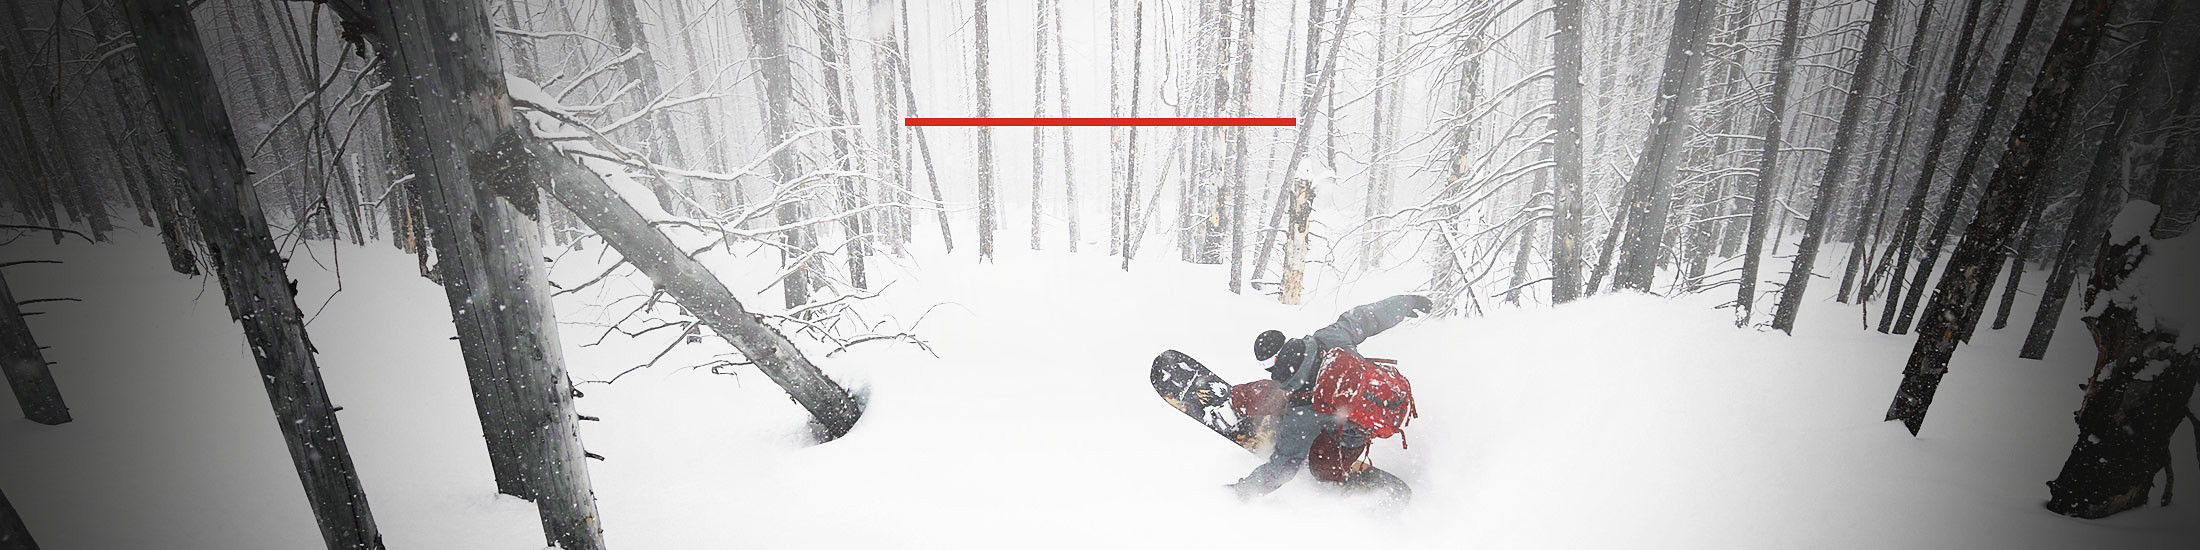 Eddie Bauer snowboard guide Chris Coulter shredding fresh pow in the Monashees, BC